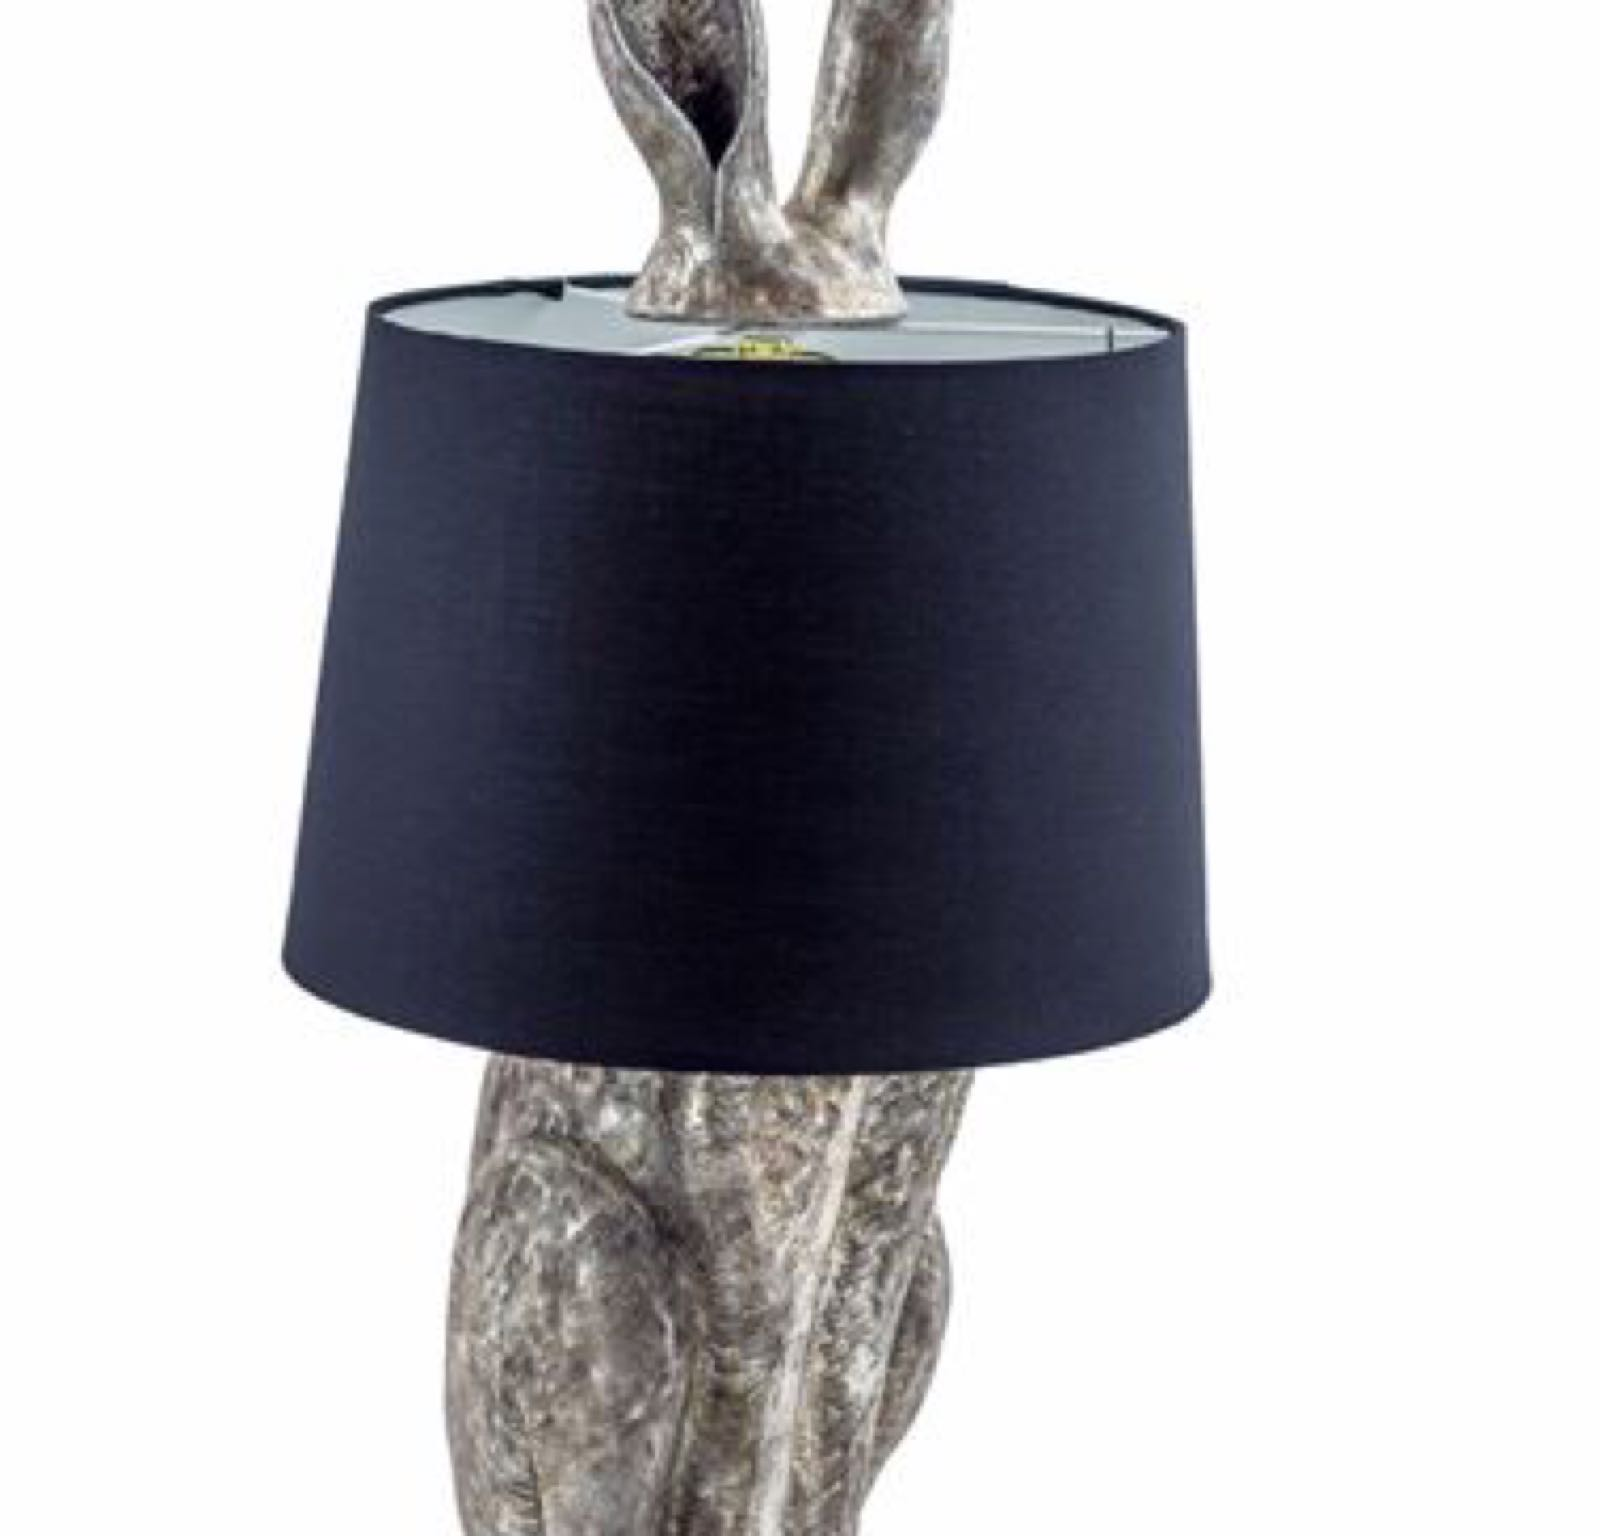 Antique Silver Hare Lamp with Black shade TL78 74cm x 32 cm